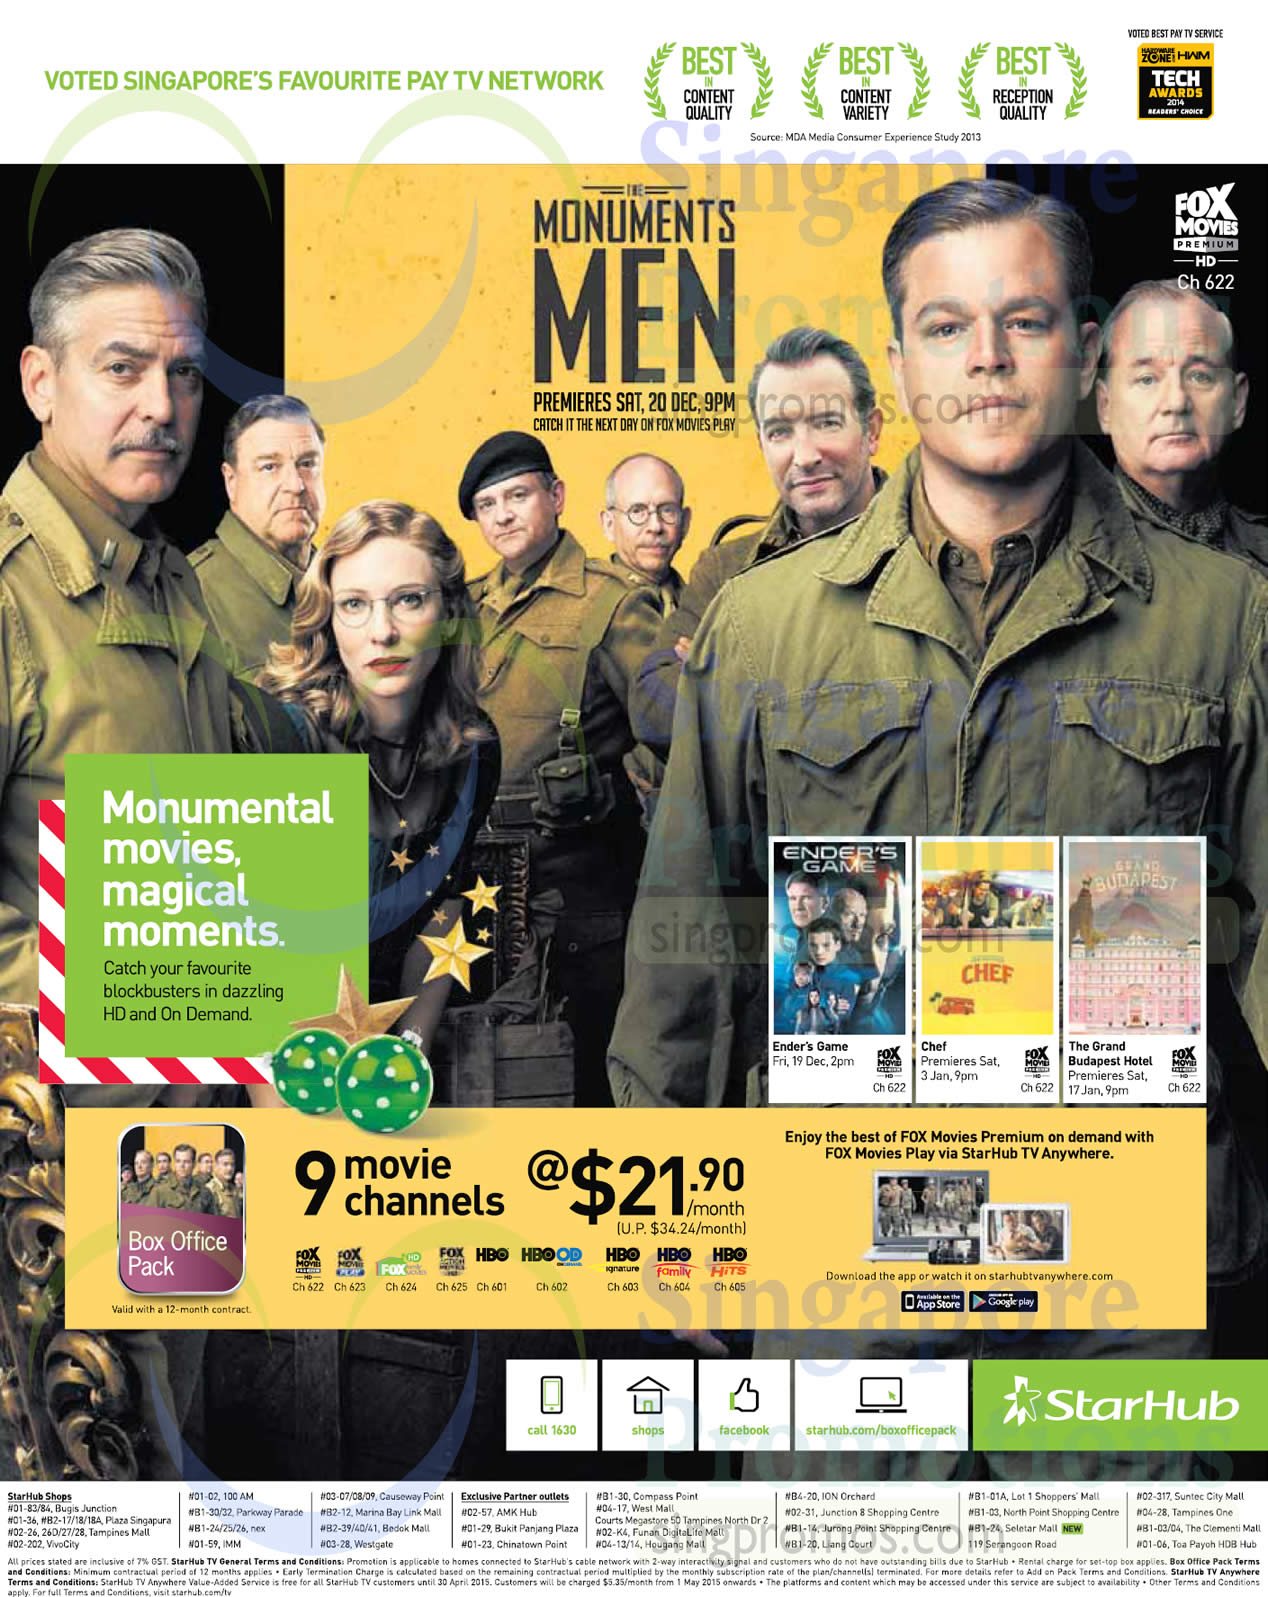 Cable TV Box Office Pack 21 90 9 Movie Channels » Starhub